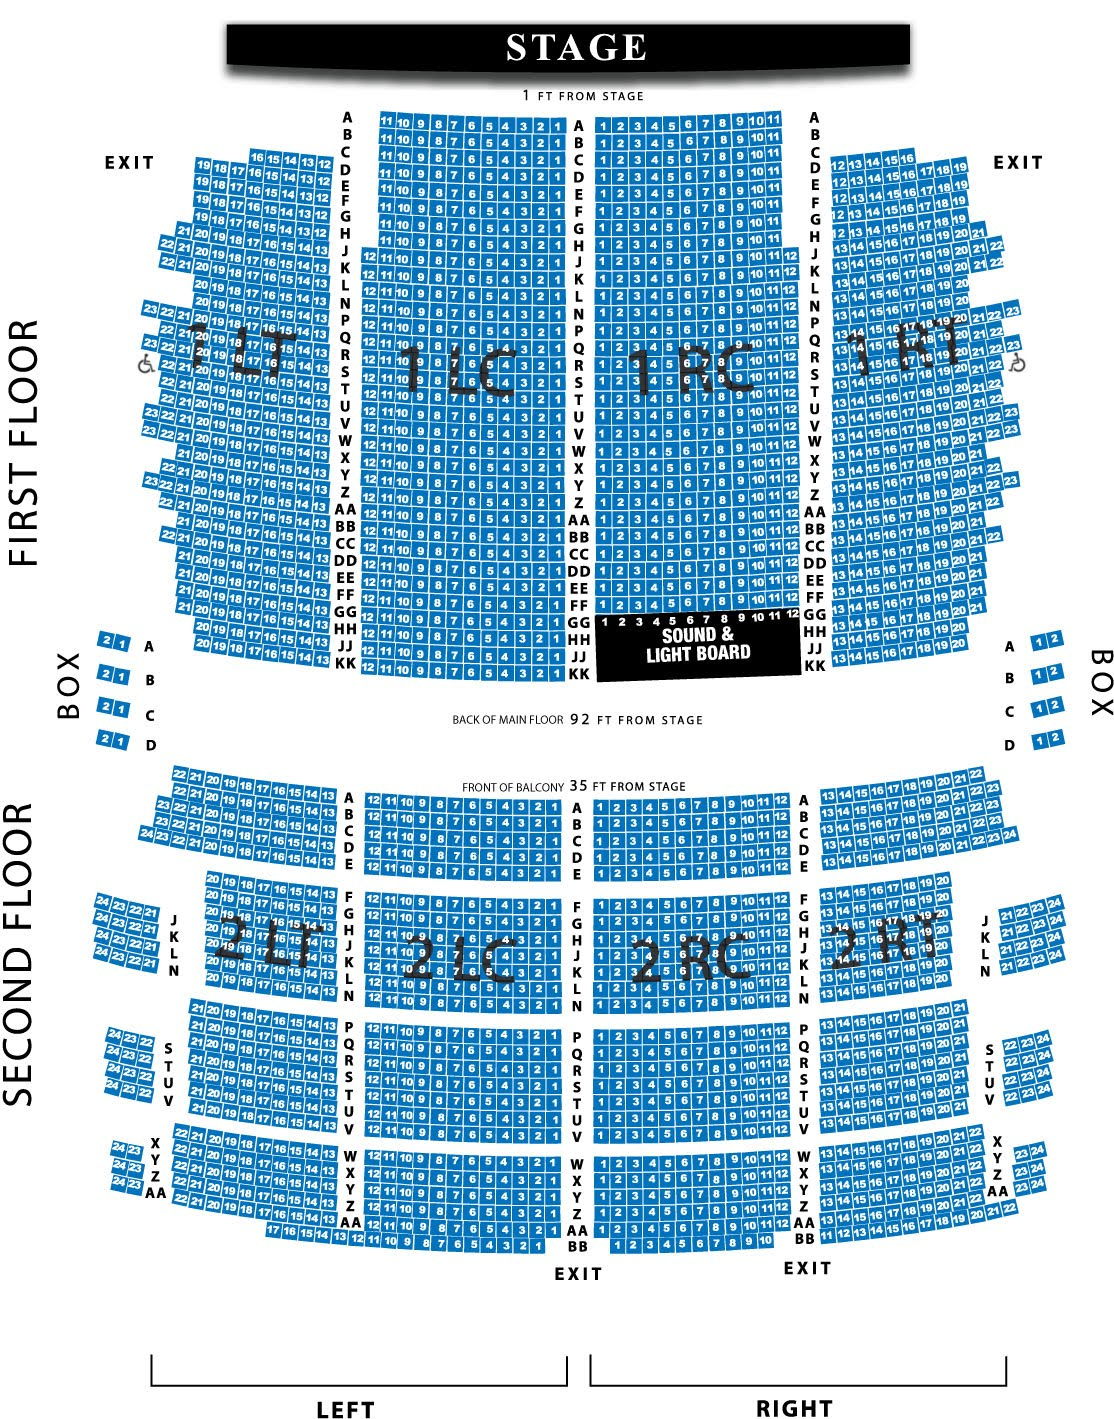 Wisconsin music man riverside theater sections and seating areas